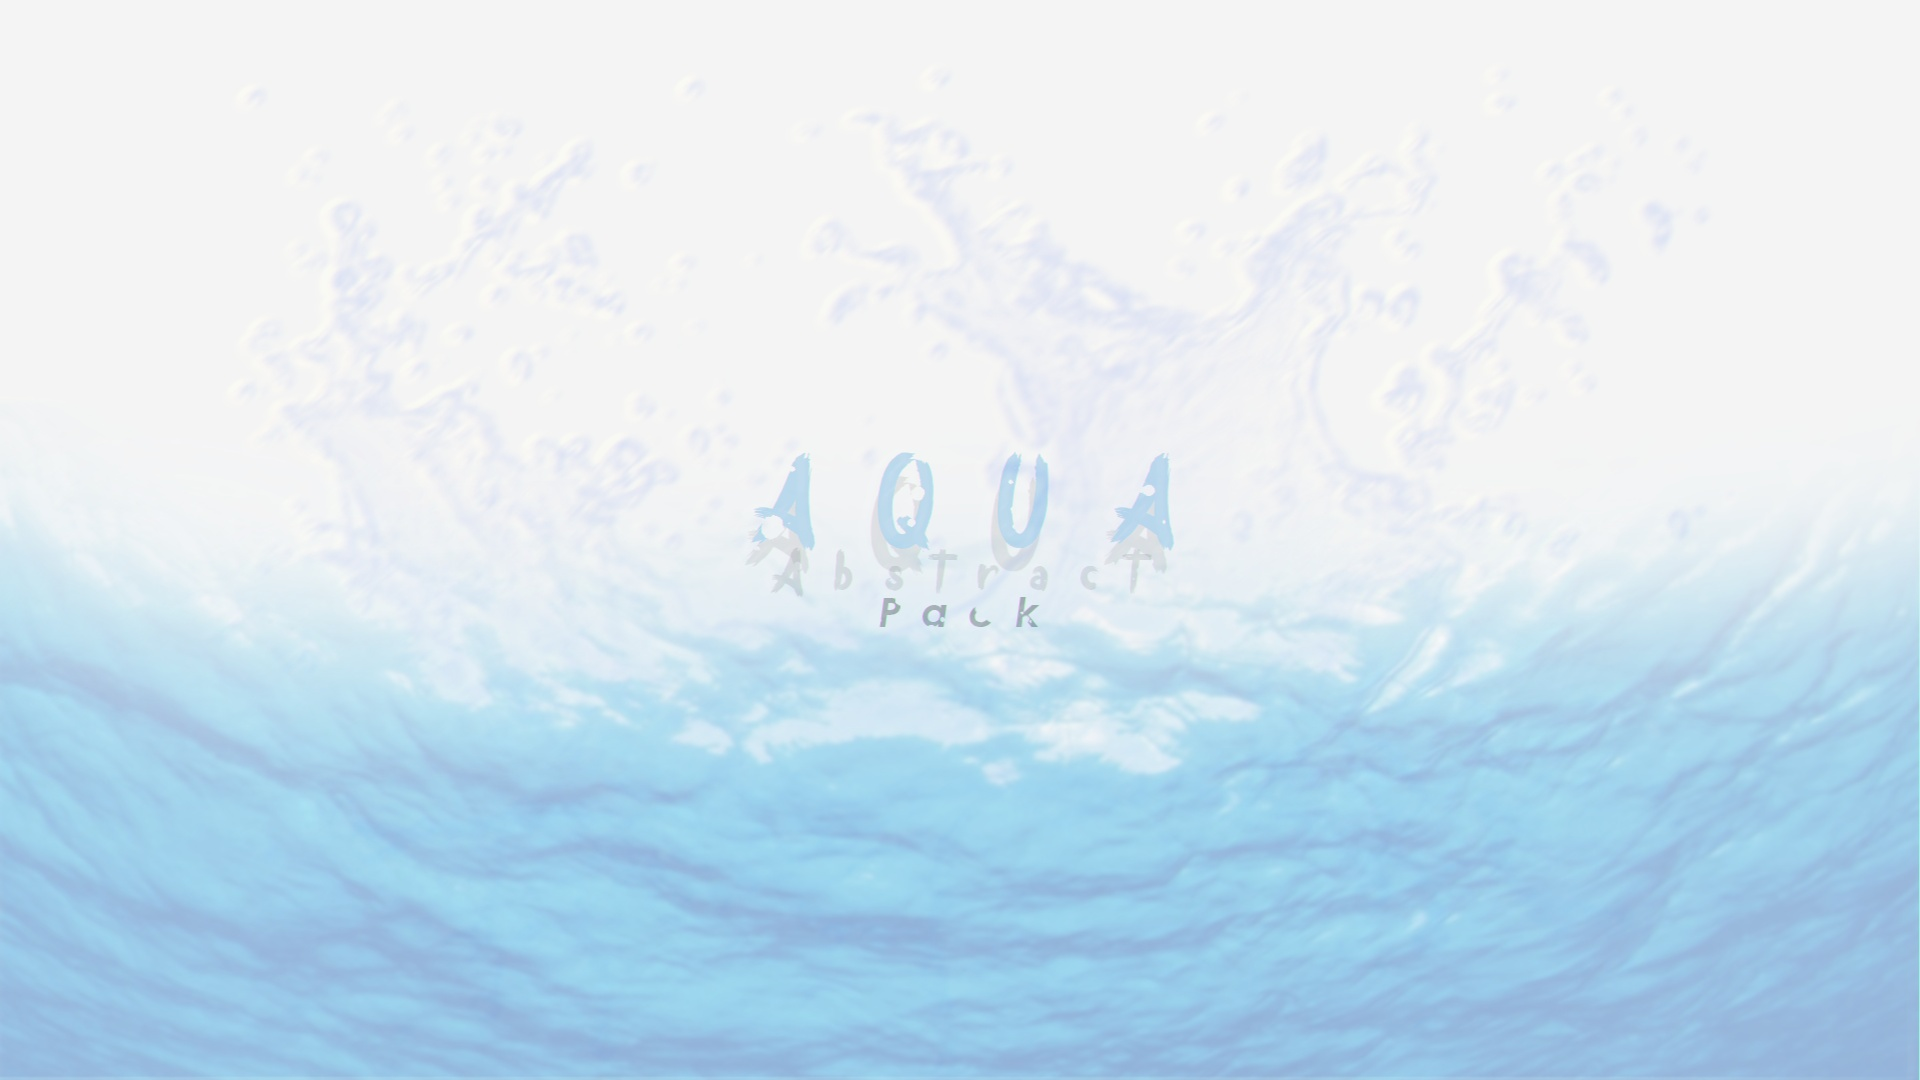 Aqua Abstract Pack